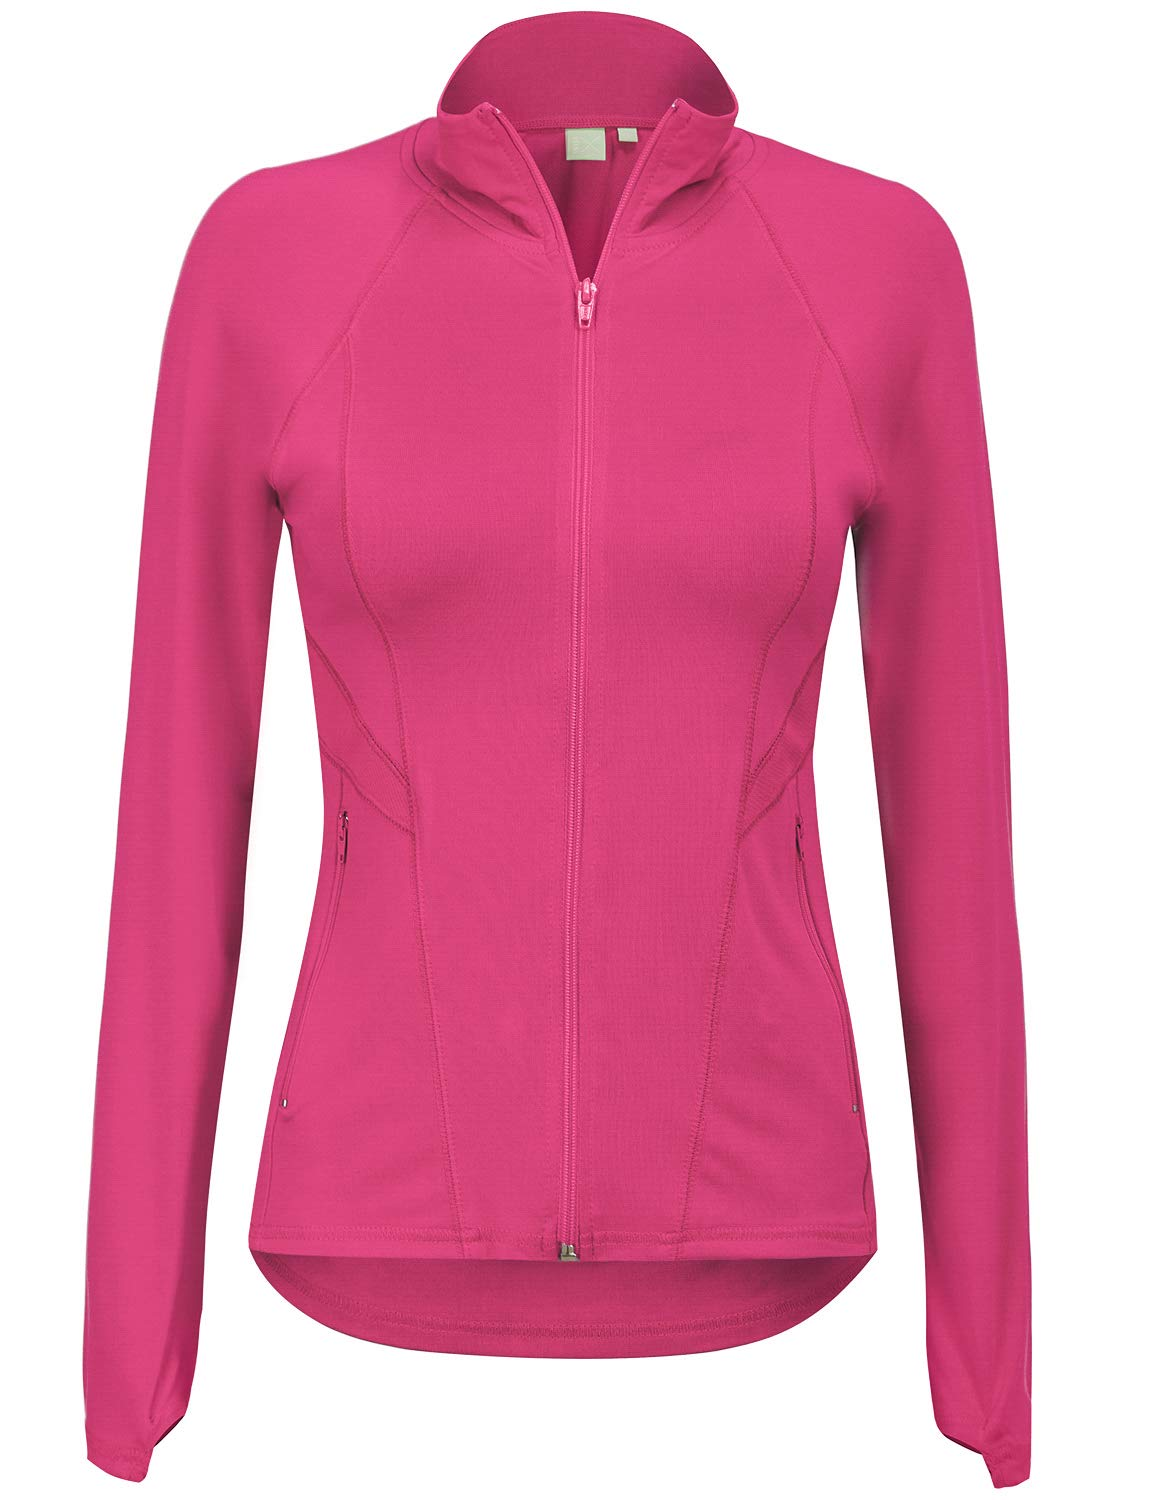 Regna X Women's Full Zip Up Activewear Stretchy Spandex Track Jacket Pink S